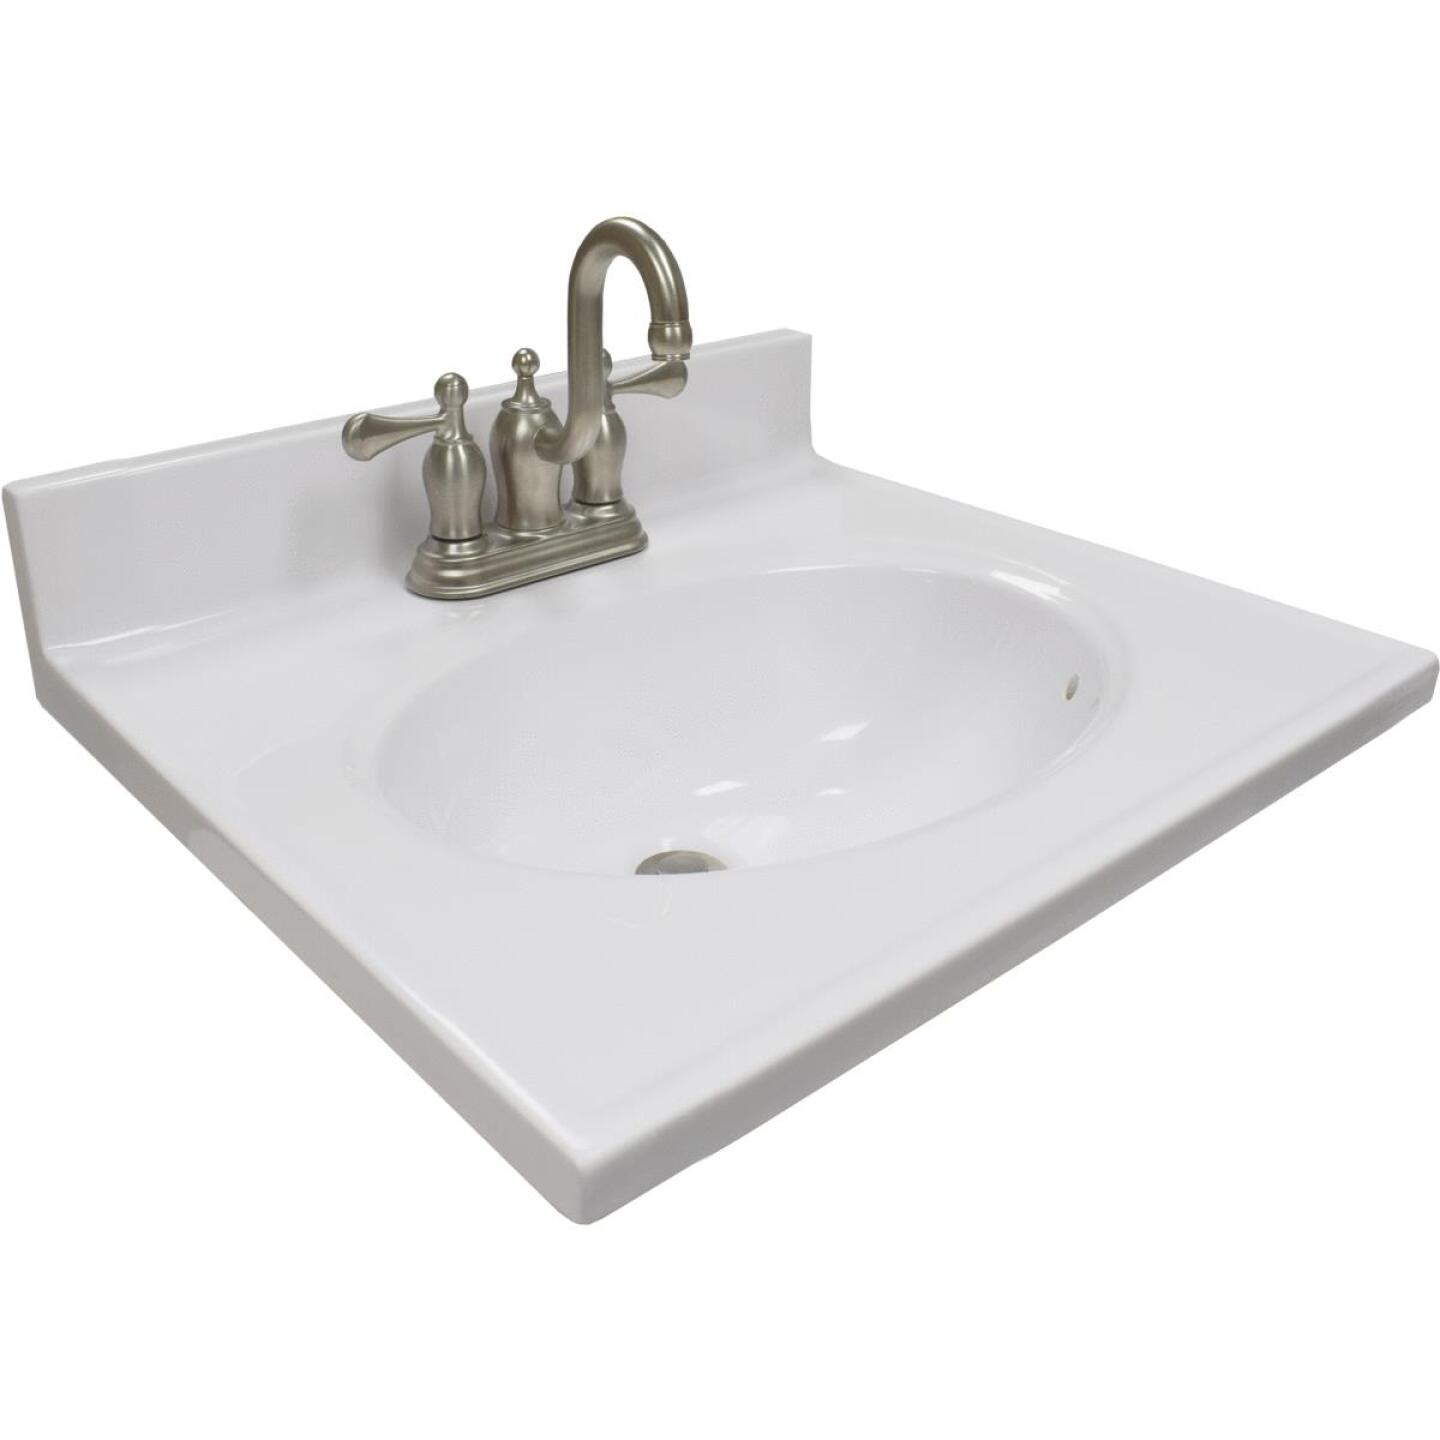 Modular Vanity Tops 19 In. W x 17 In. D Solid White Cultured Marble Vanity Top with Oval Bowl Image 1